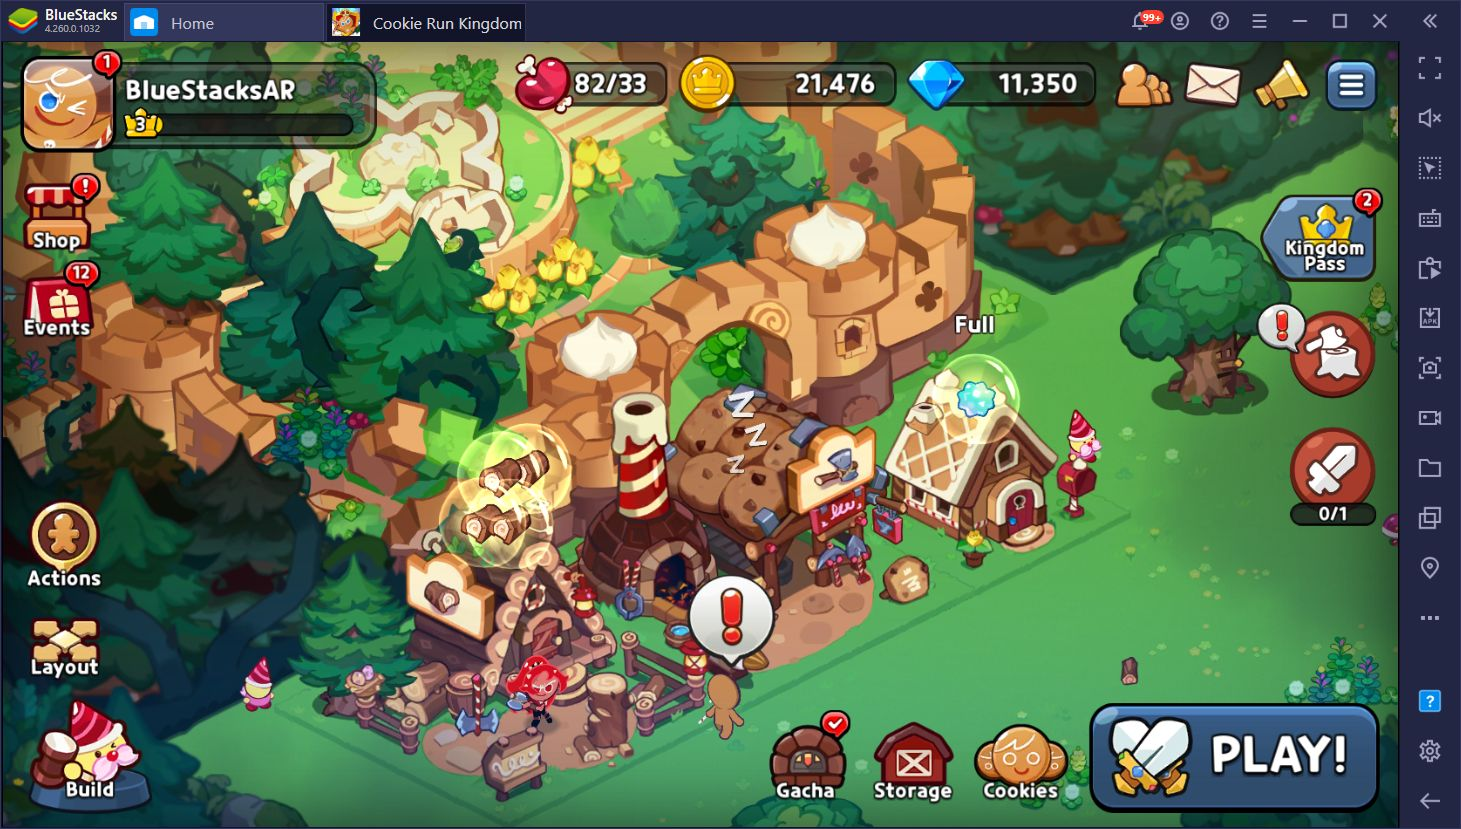 Cookie Run: Kingdom on PC – How to Use BlueStacks' Tools to Build your Cookie Empire